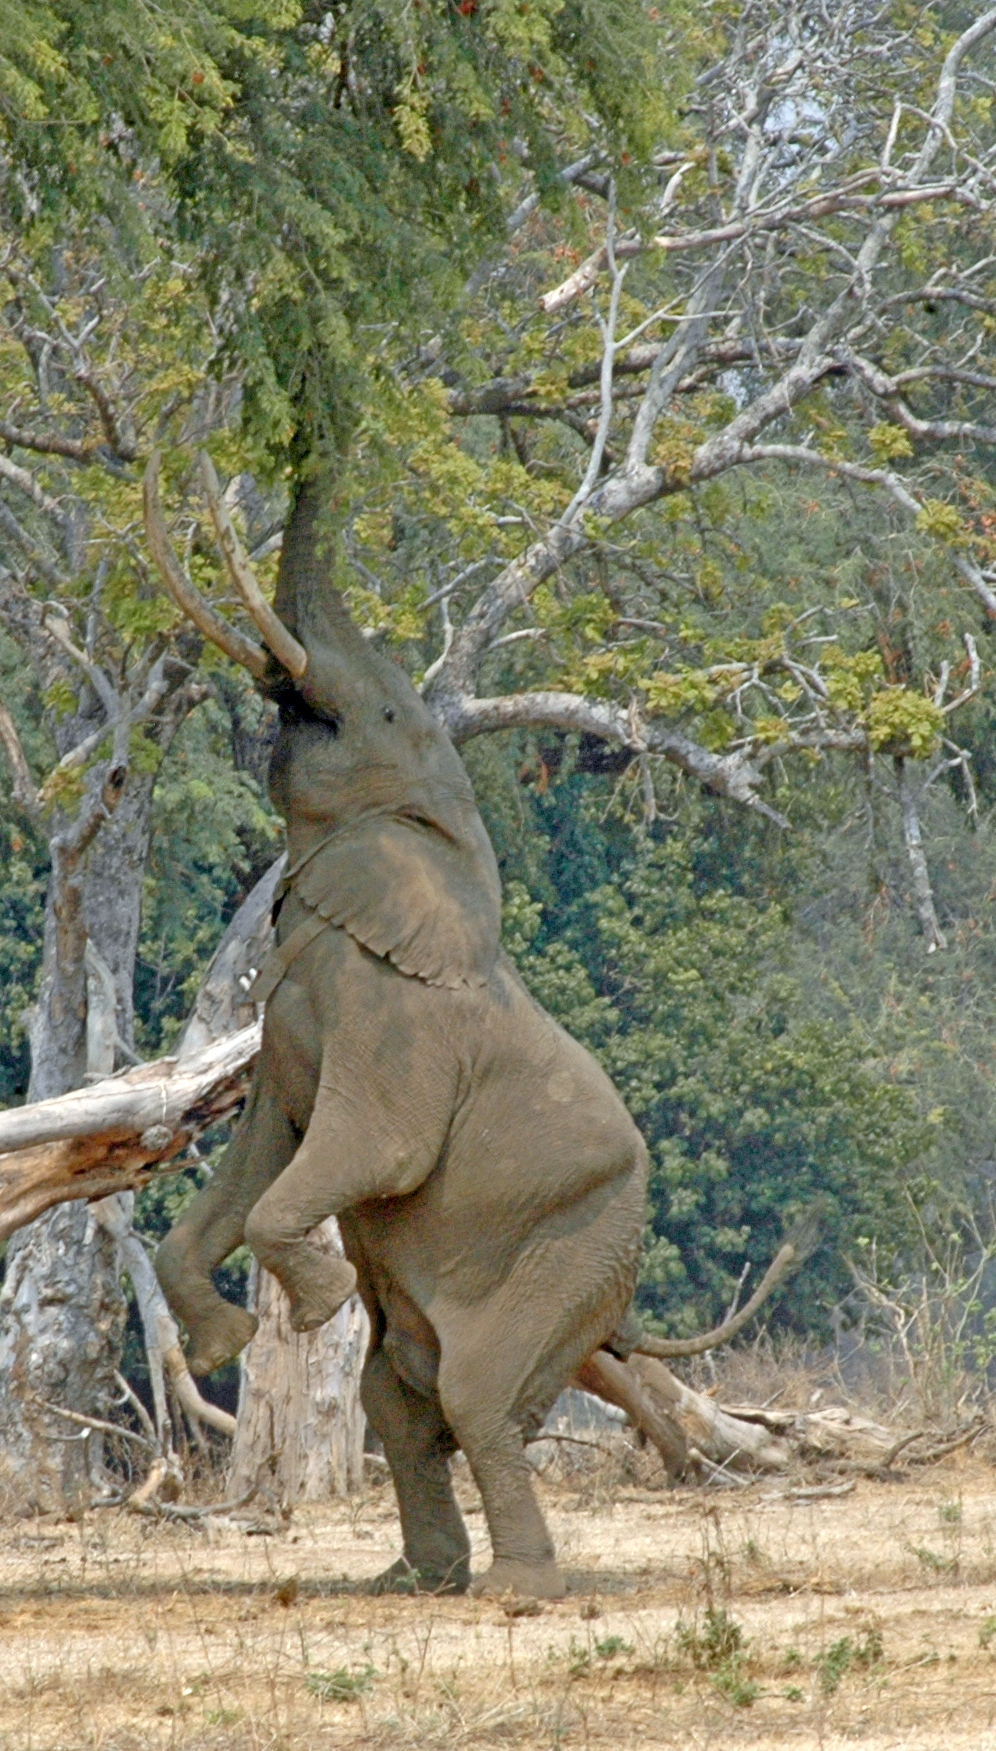 Elephant bull in Mana Pools Game Reserve, Zimbabwe